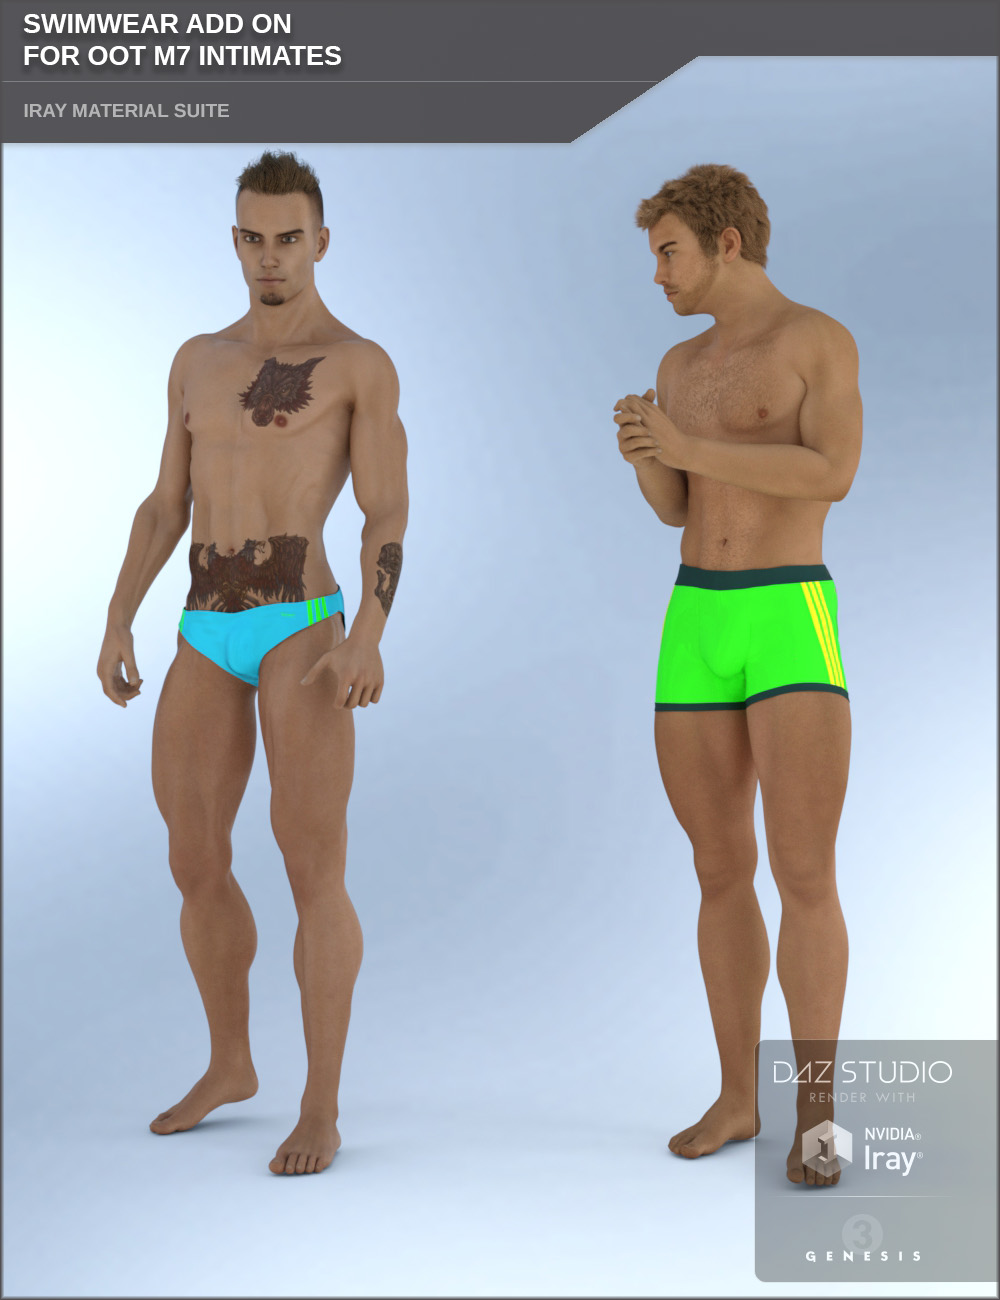 Swimwear Add On for OOT M7 Intimates for Genesis 3 Males